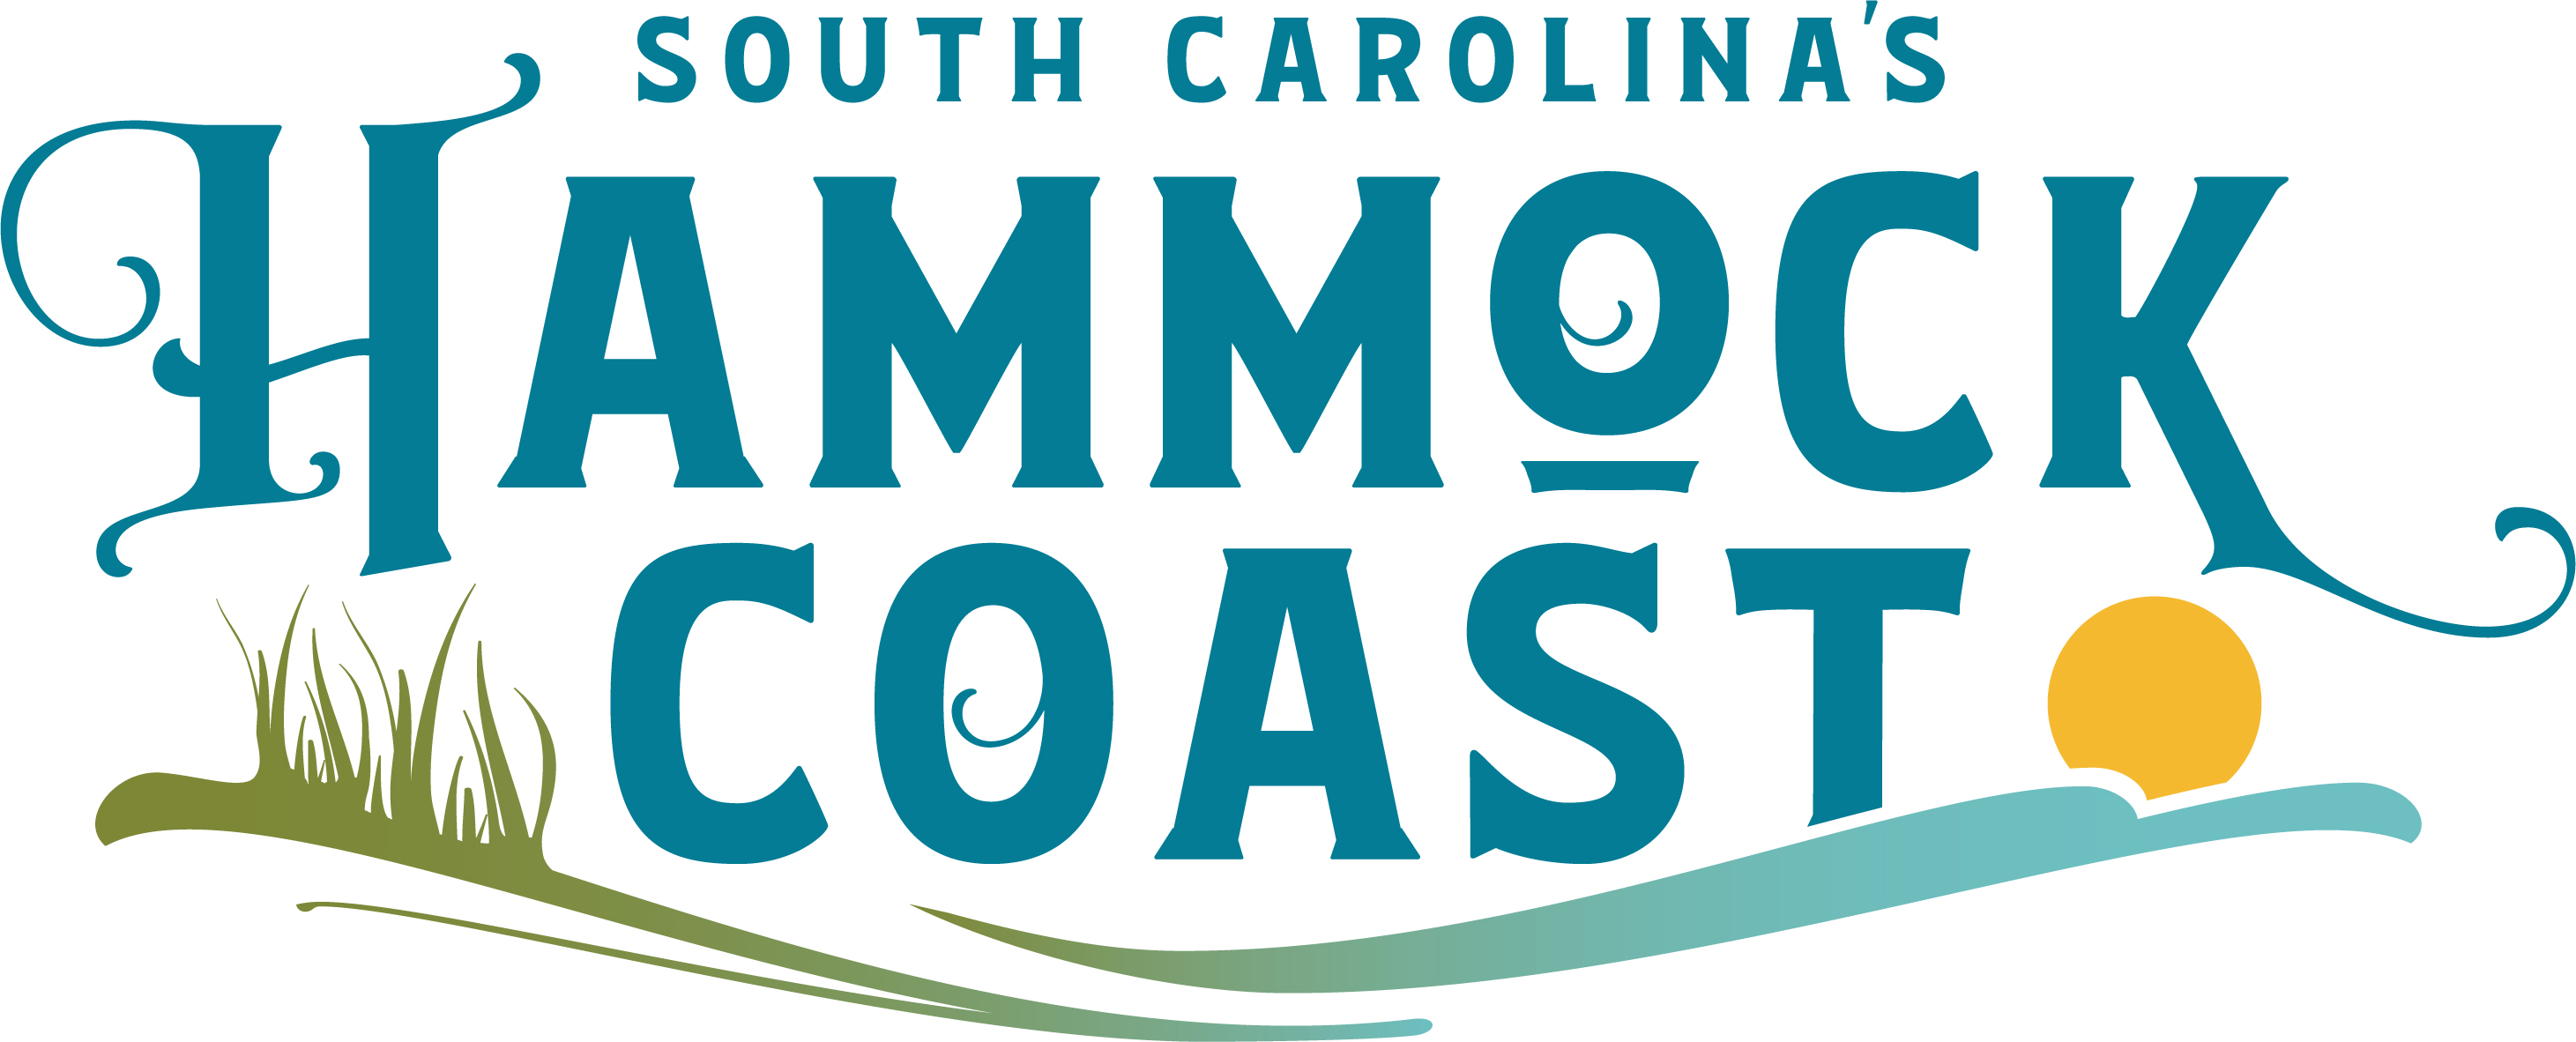 South Carolina's Hammock Coast